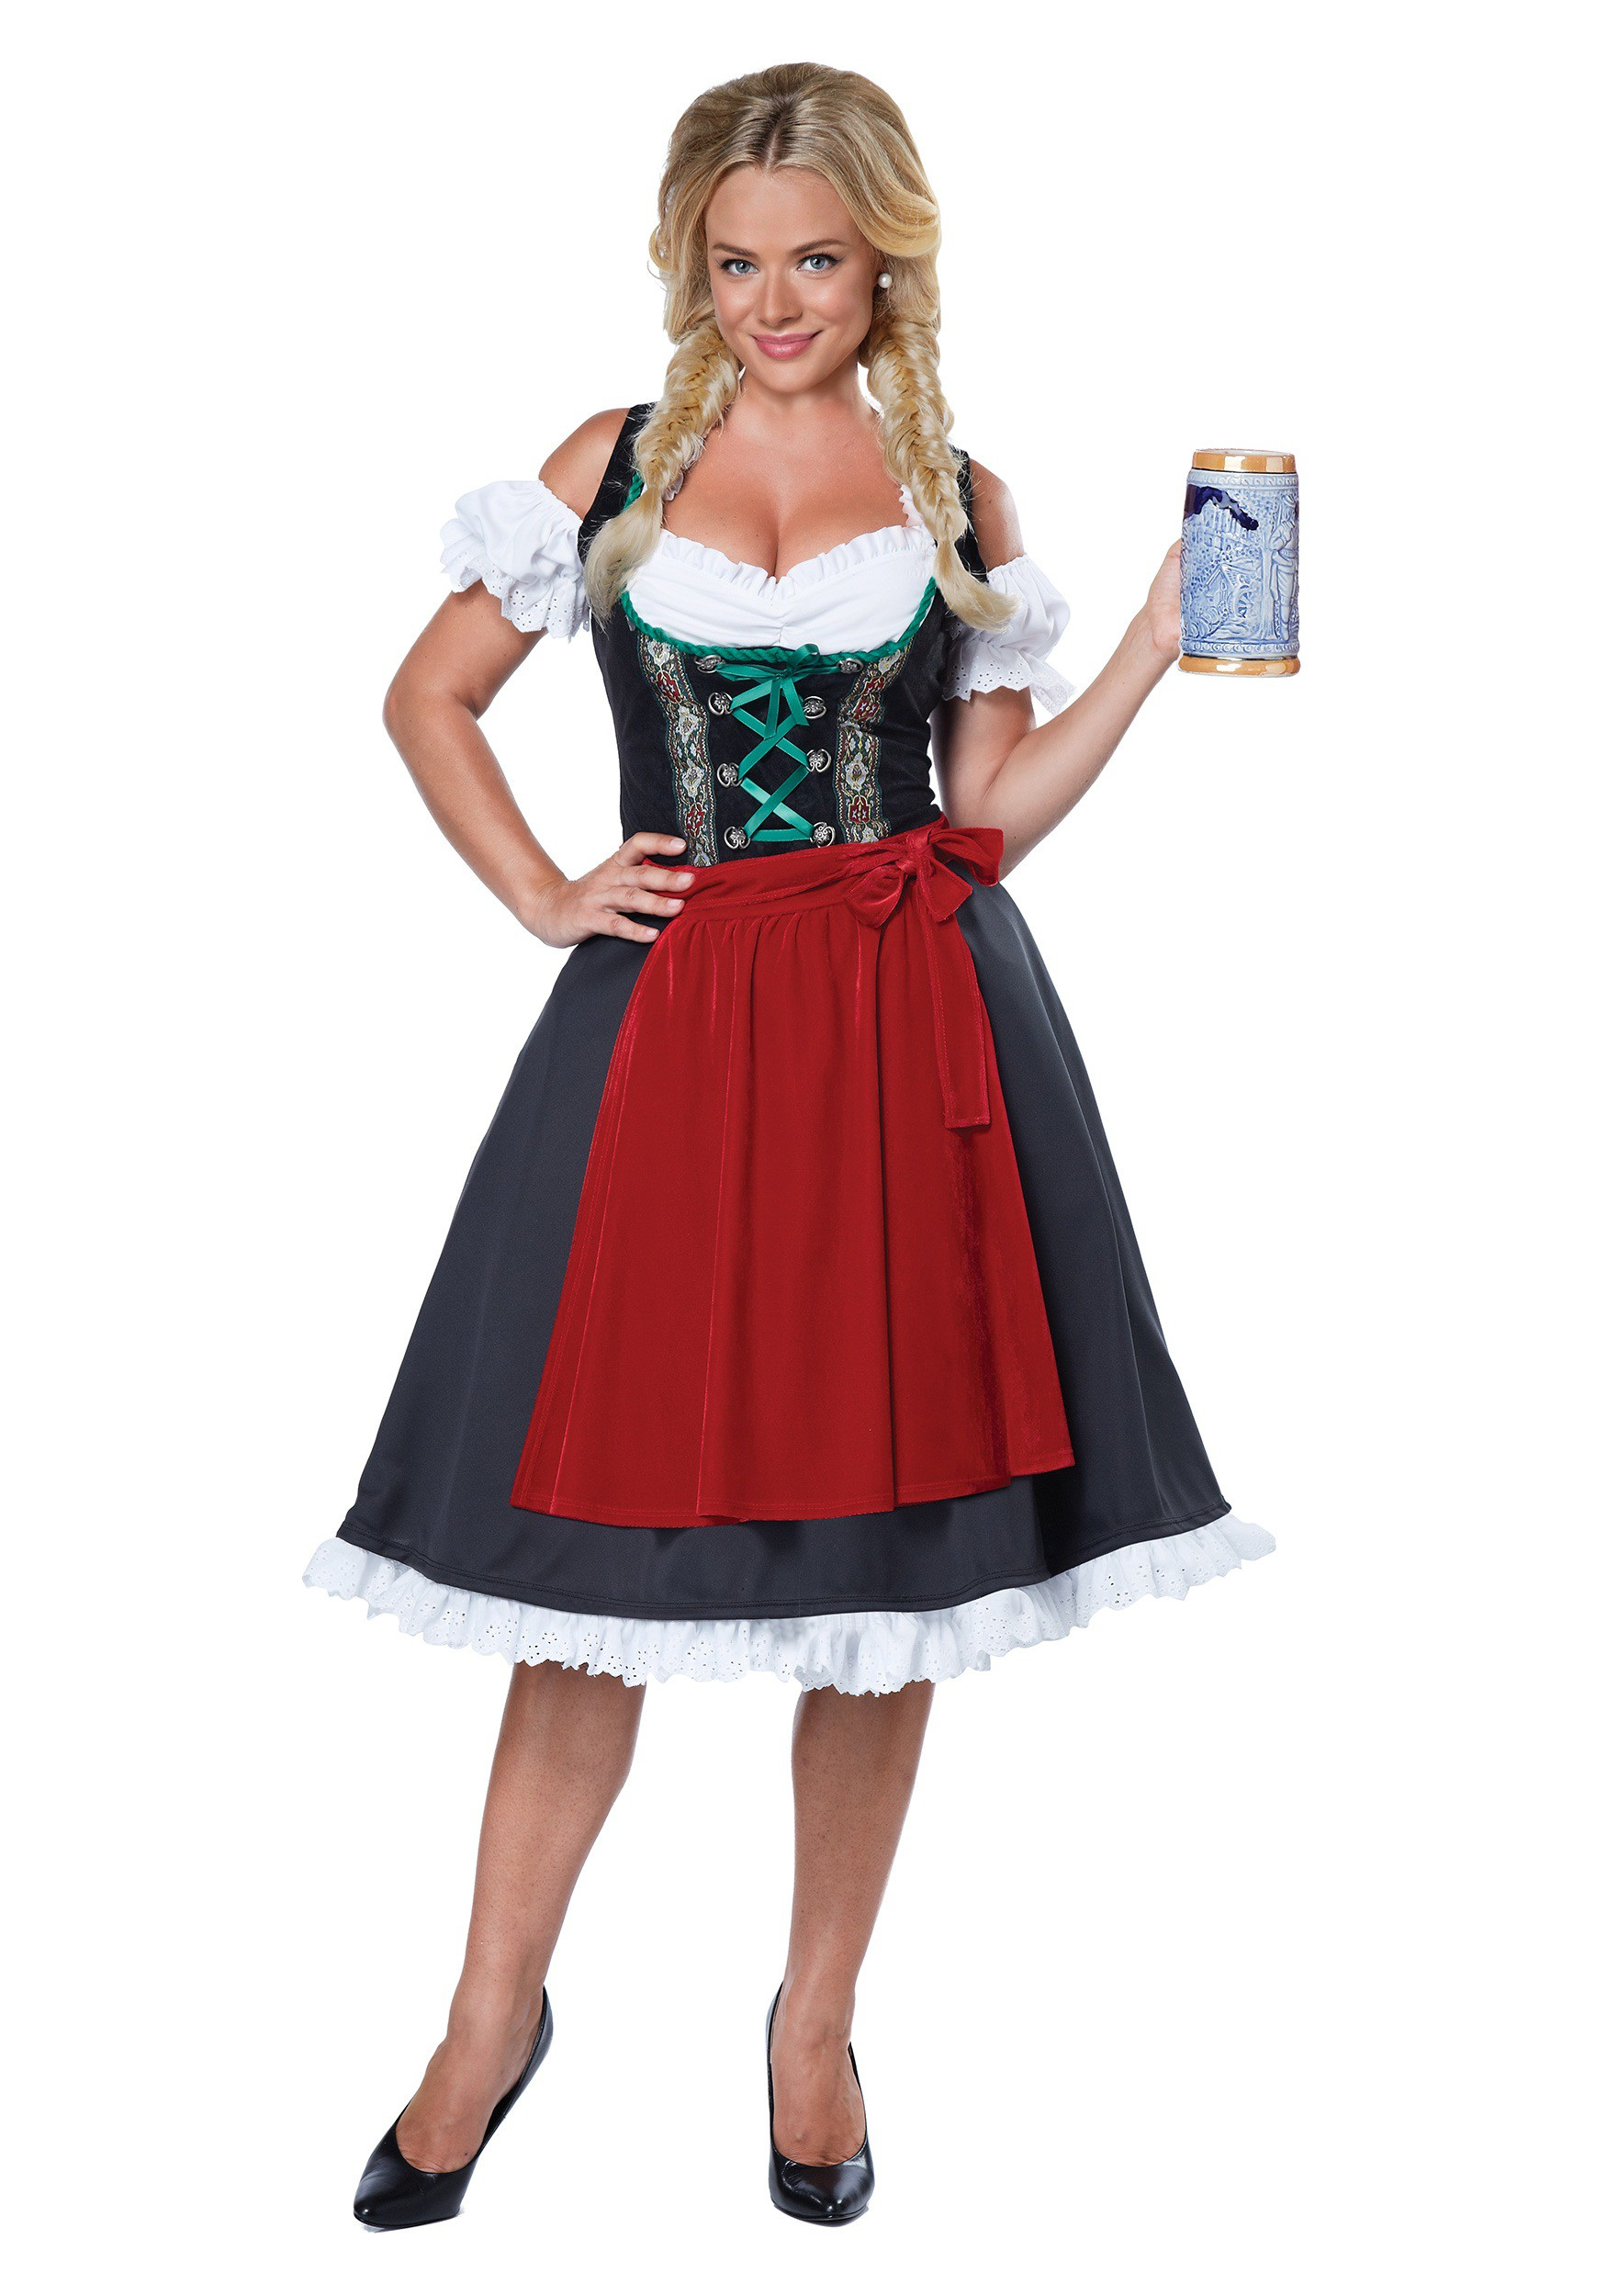 Oktoberfest Fraulein Costume for Women